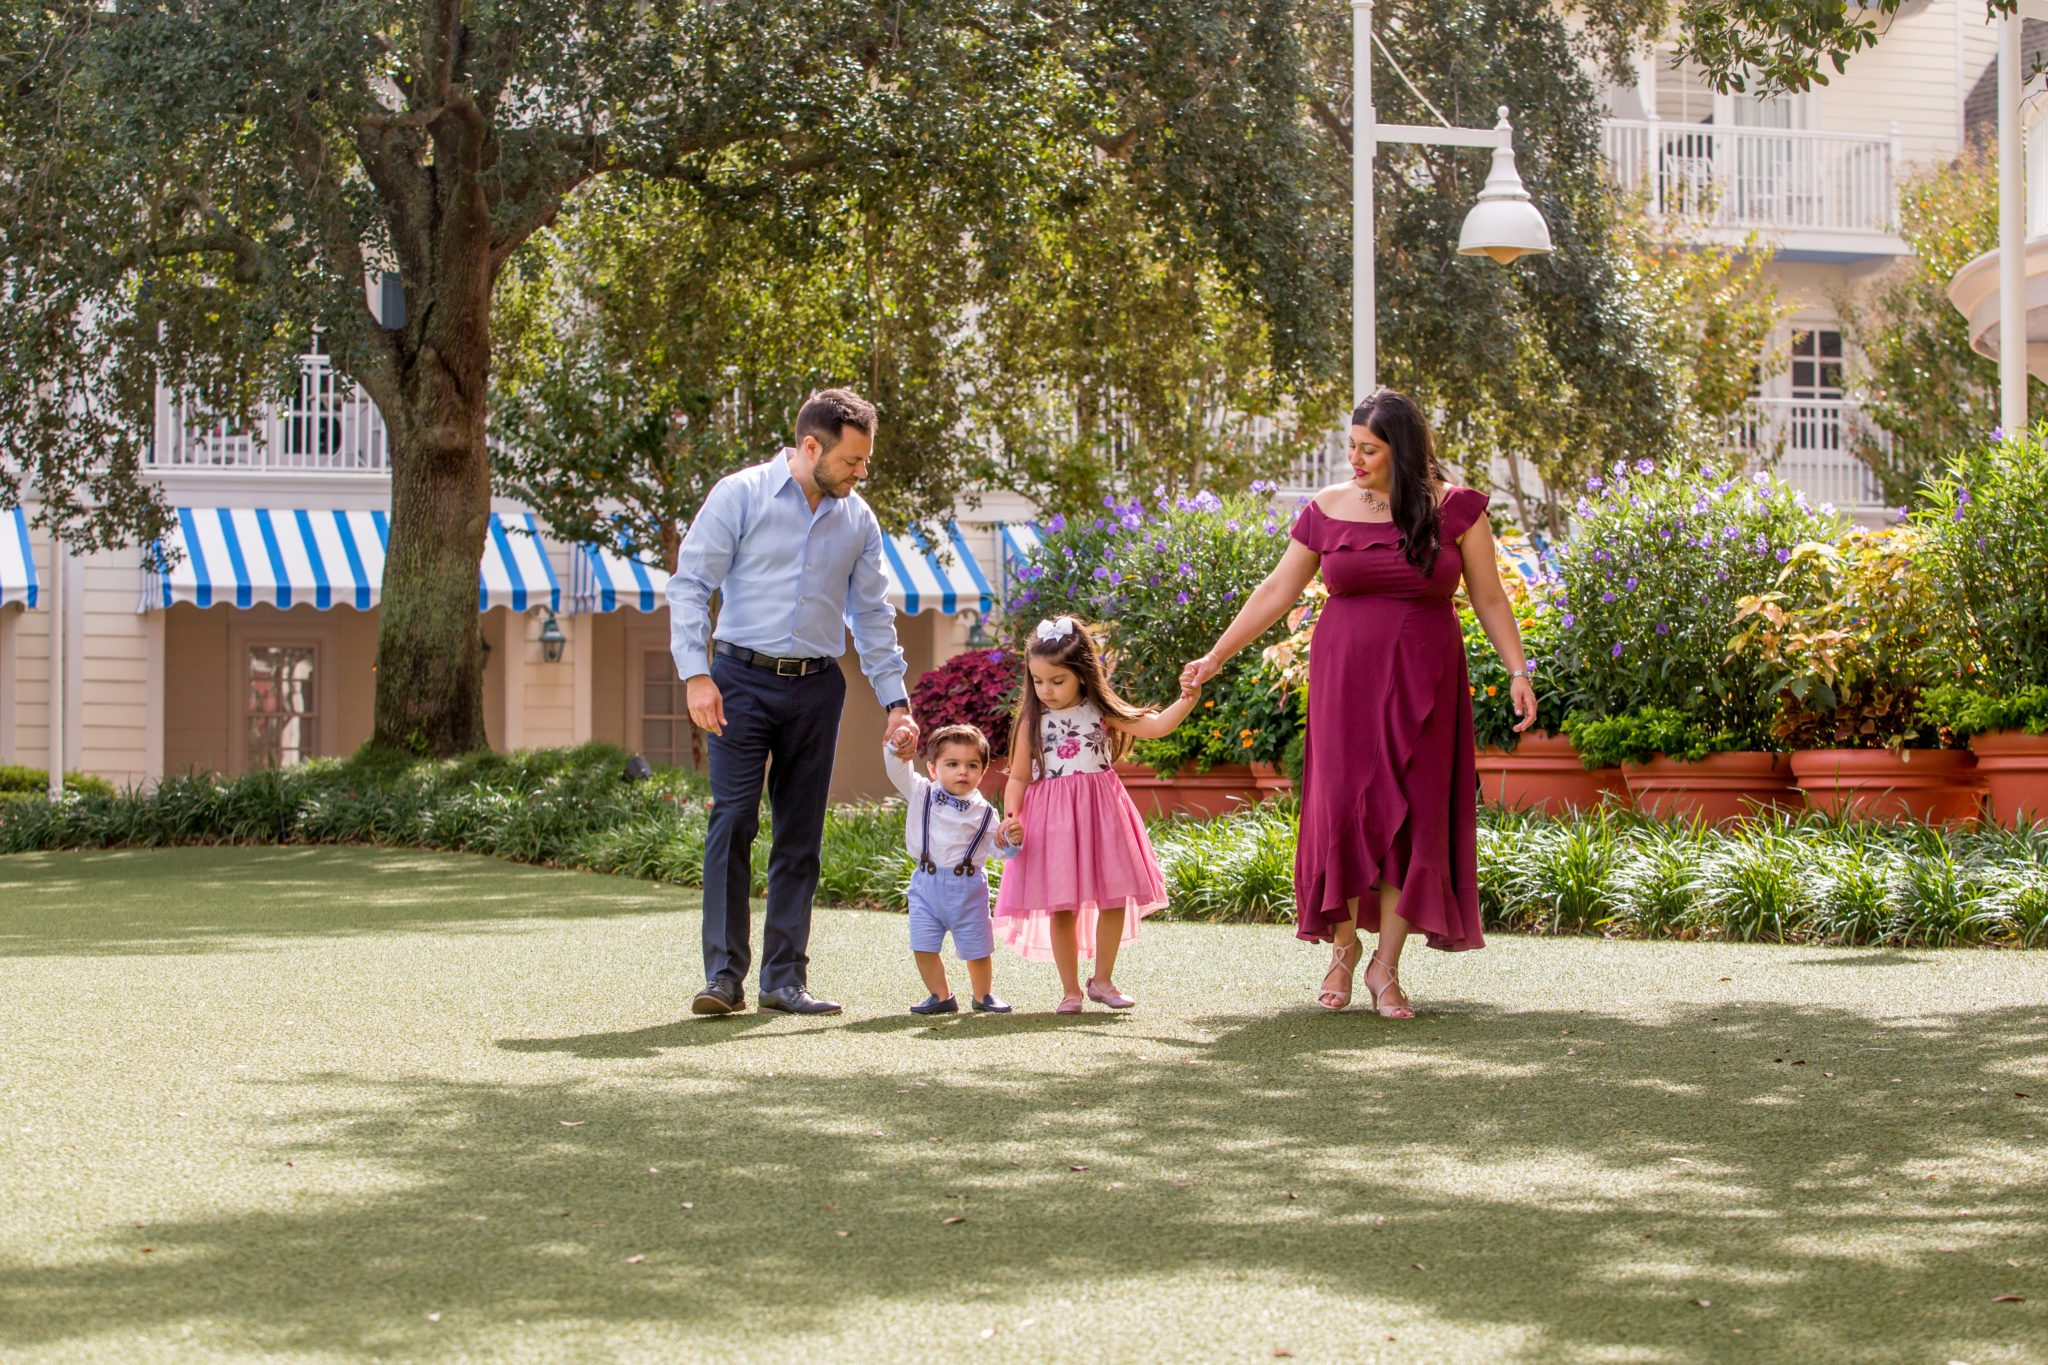 Orlando Disney photography session with a family at a Disney resort